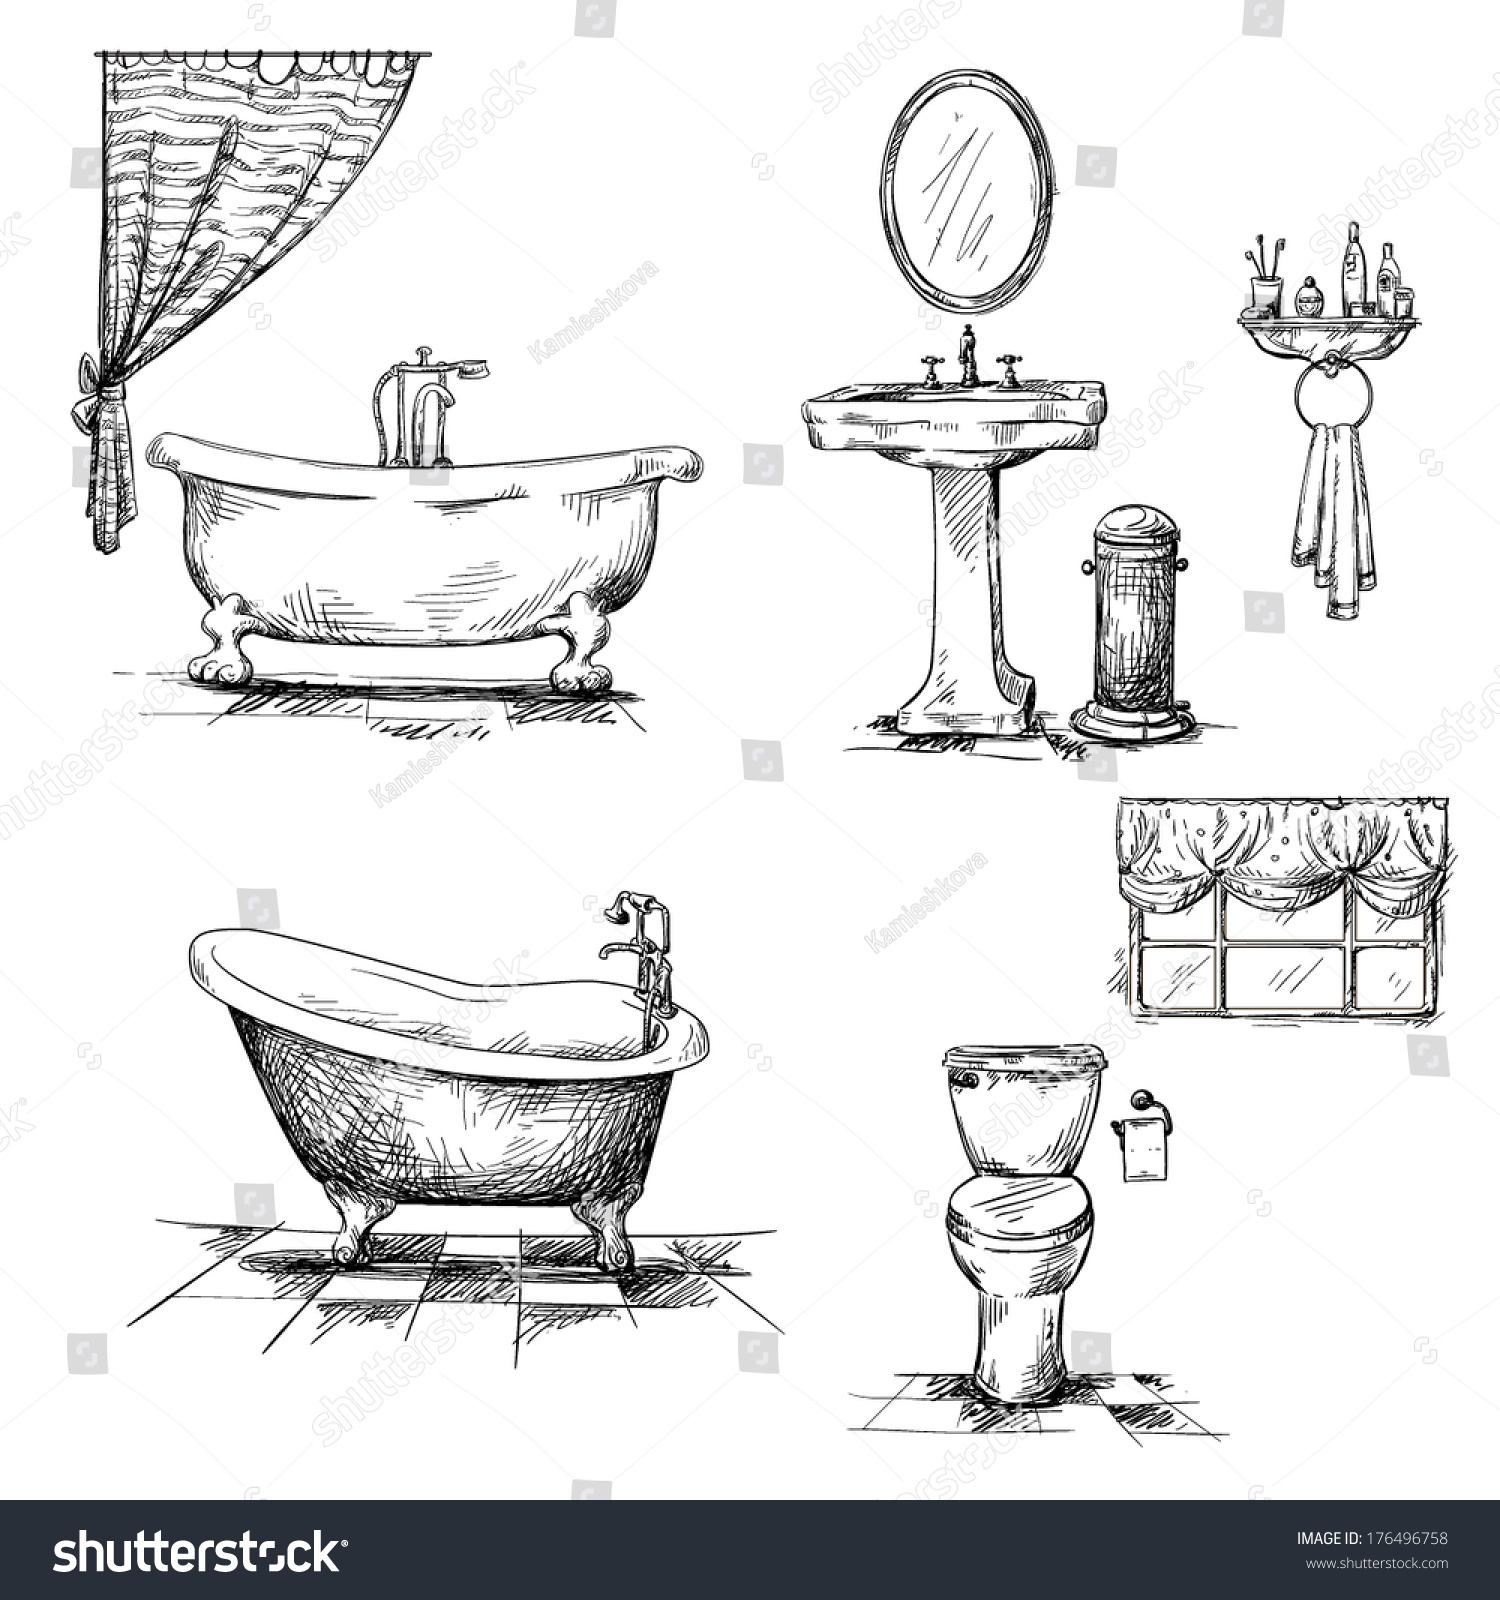 Bathroom Interior Elements. Hand Drawn. Bathtub, Toilet